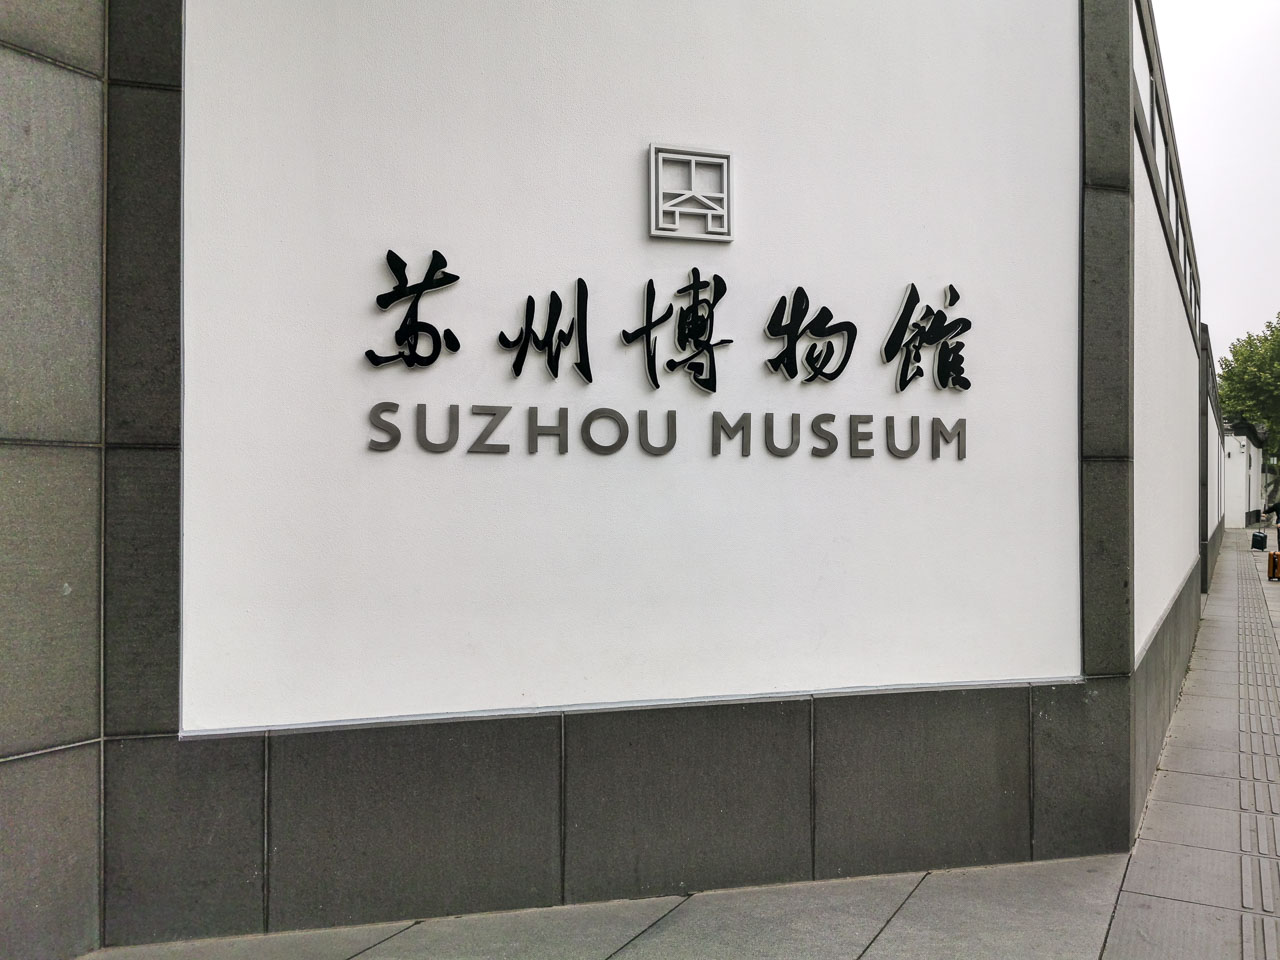 Entrance to the Suzhou Museum